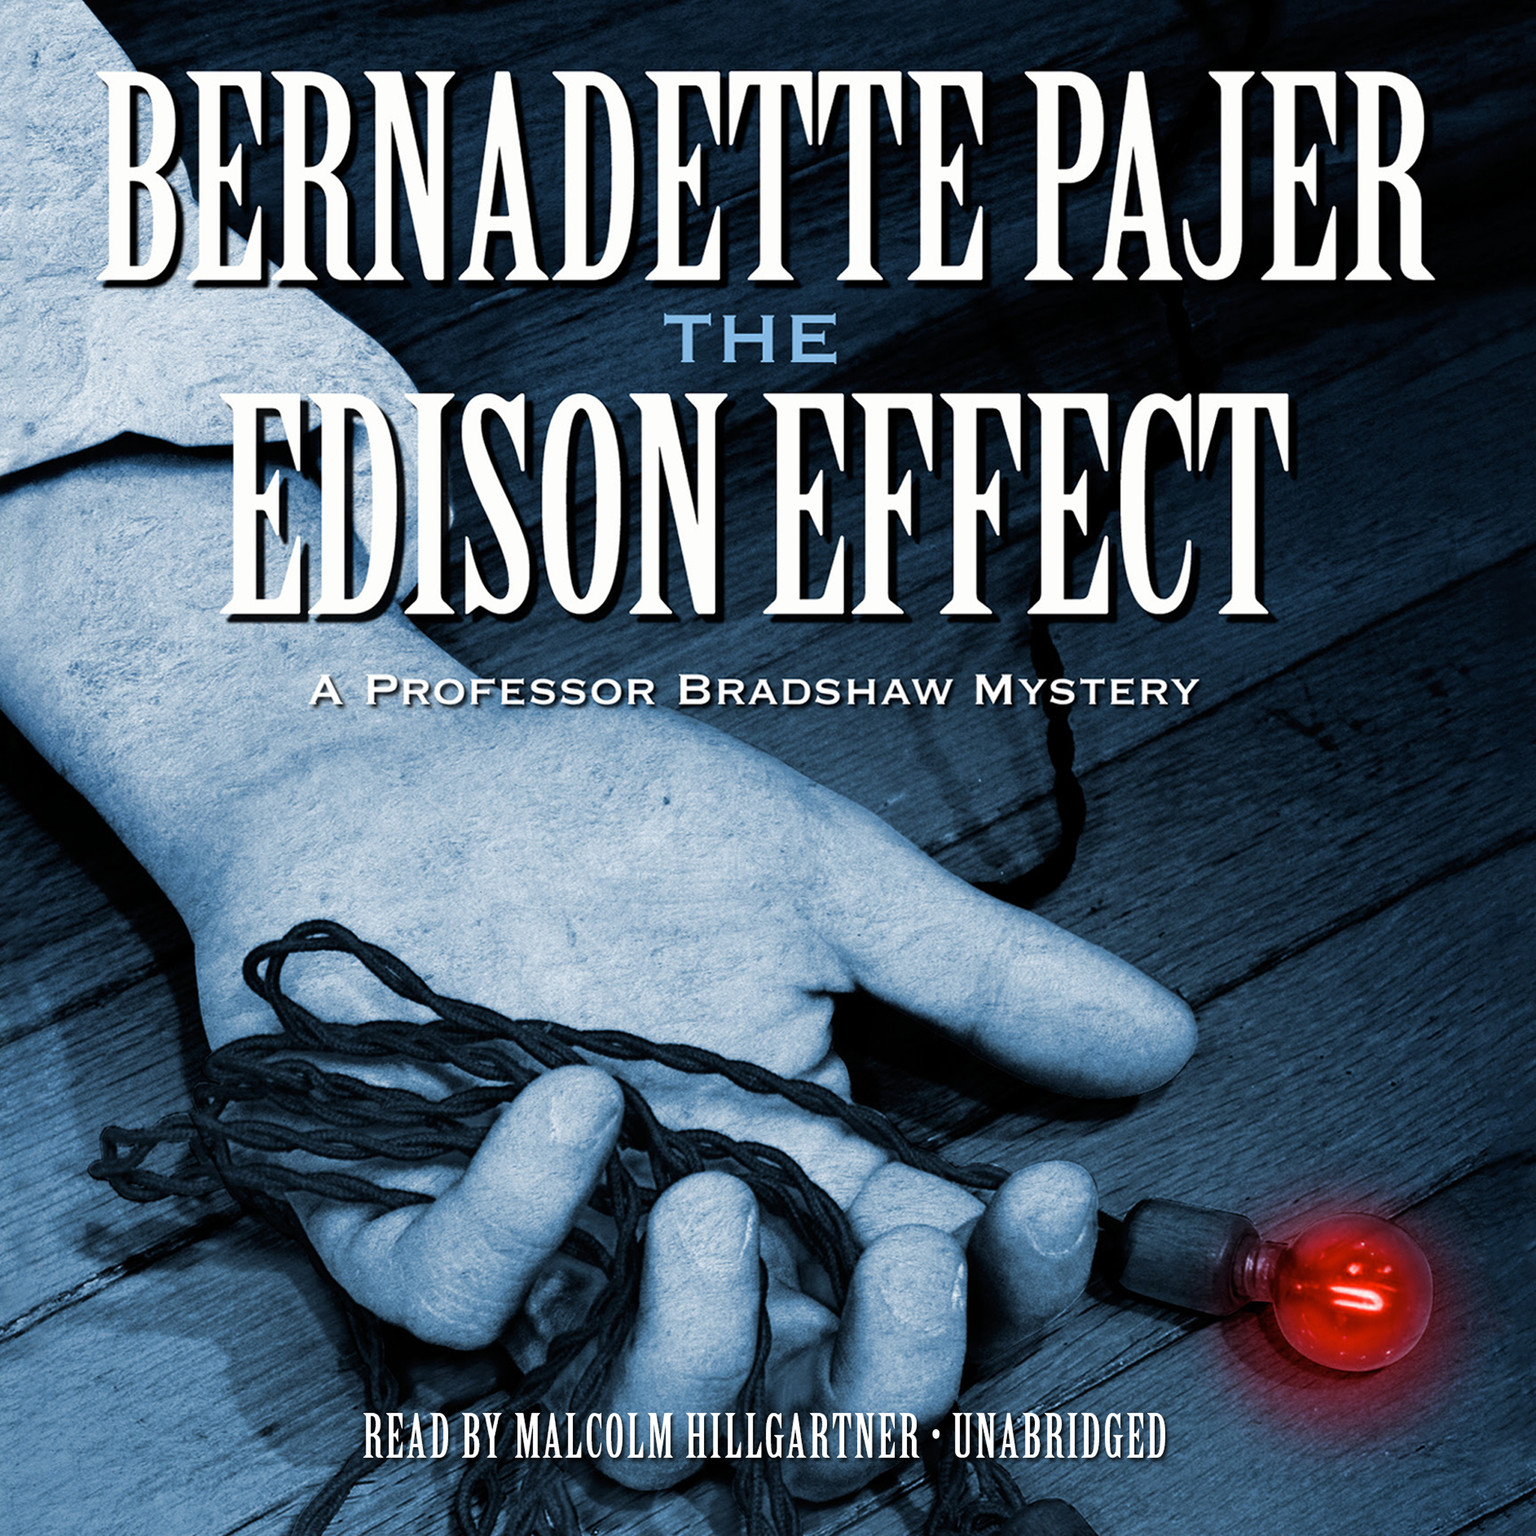 Printable The Edison Effect: A Professor Bradshaw Mystery Audiobook Cover Art